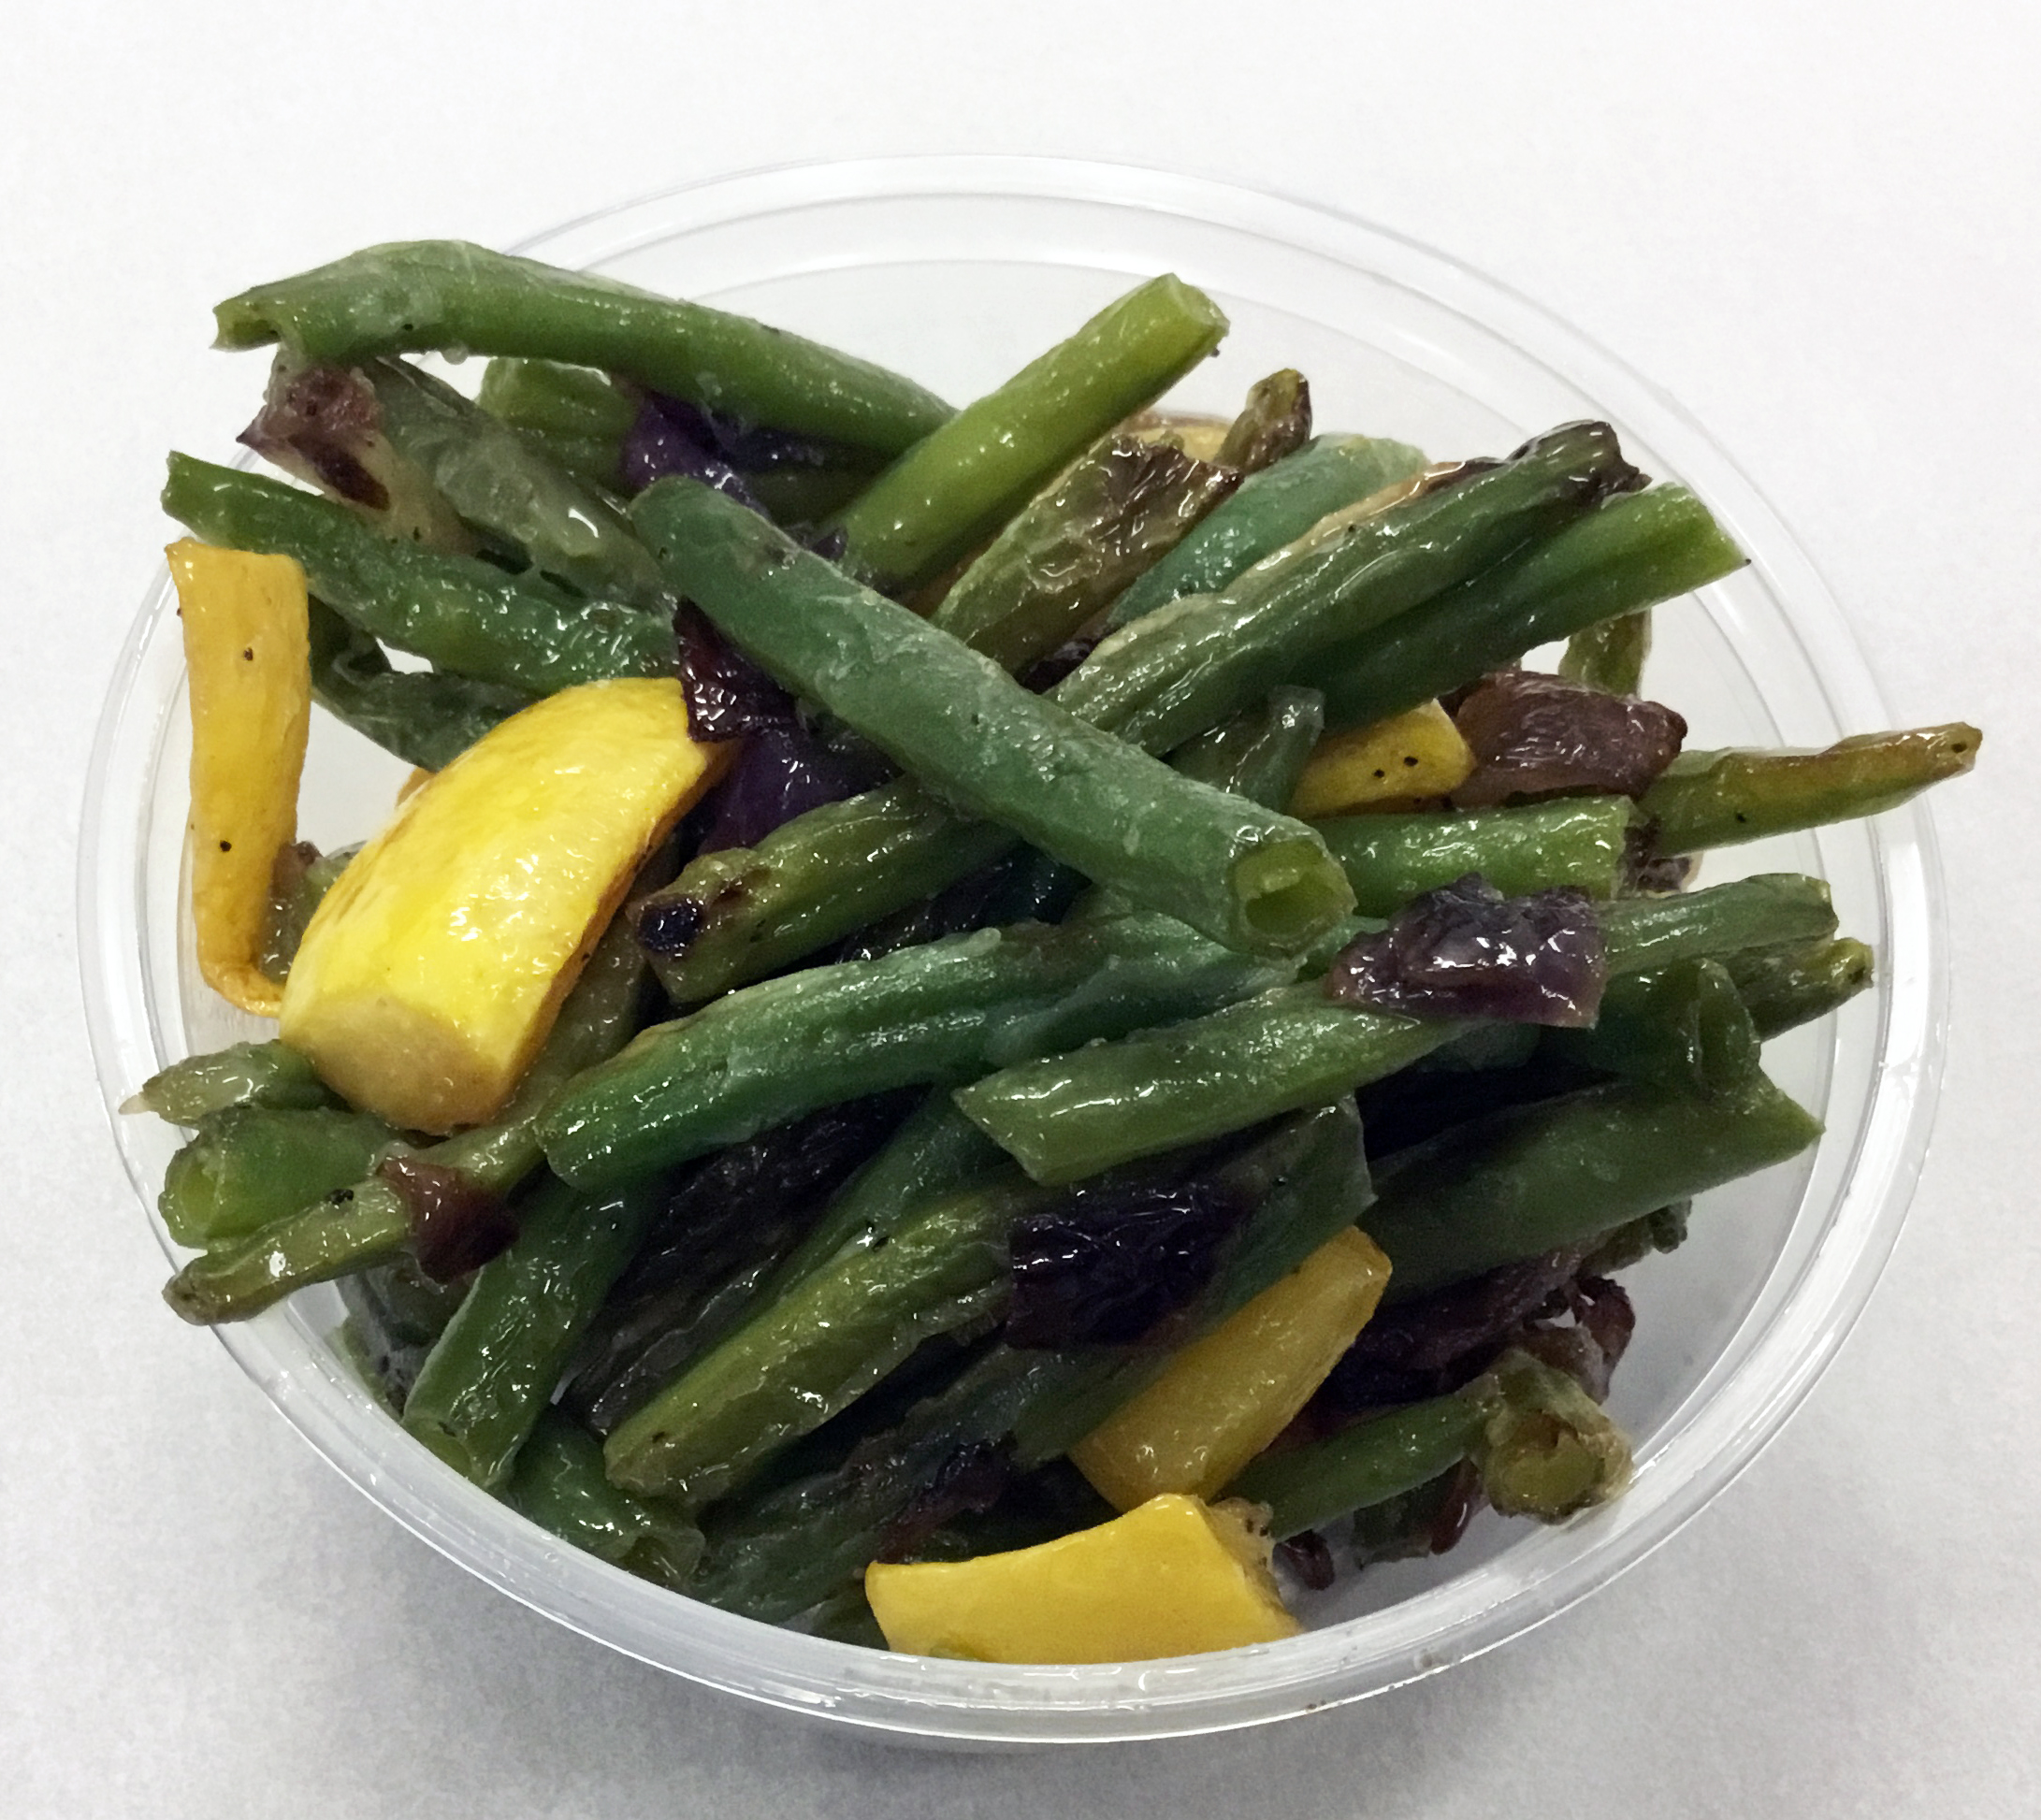 Green beans with red onion and yellow squash.